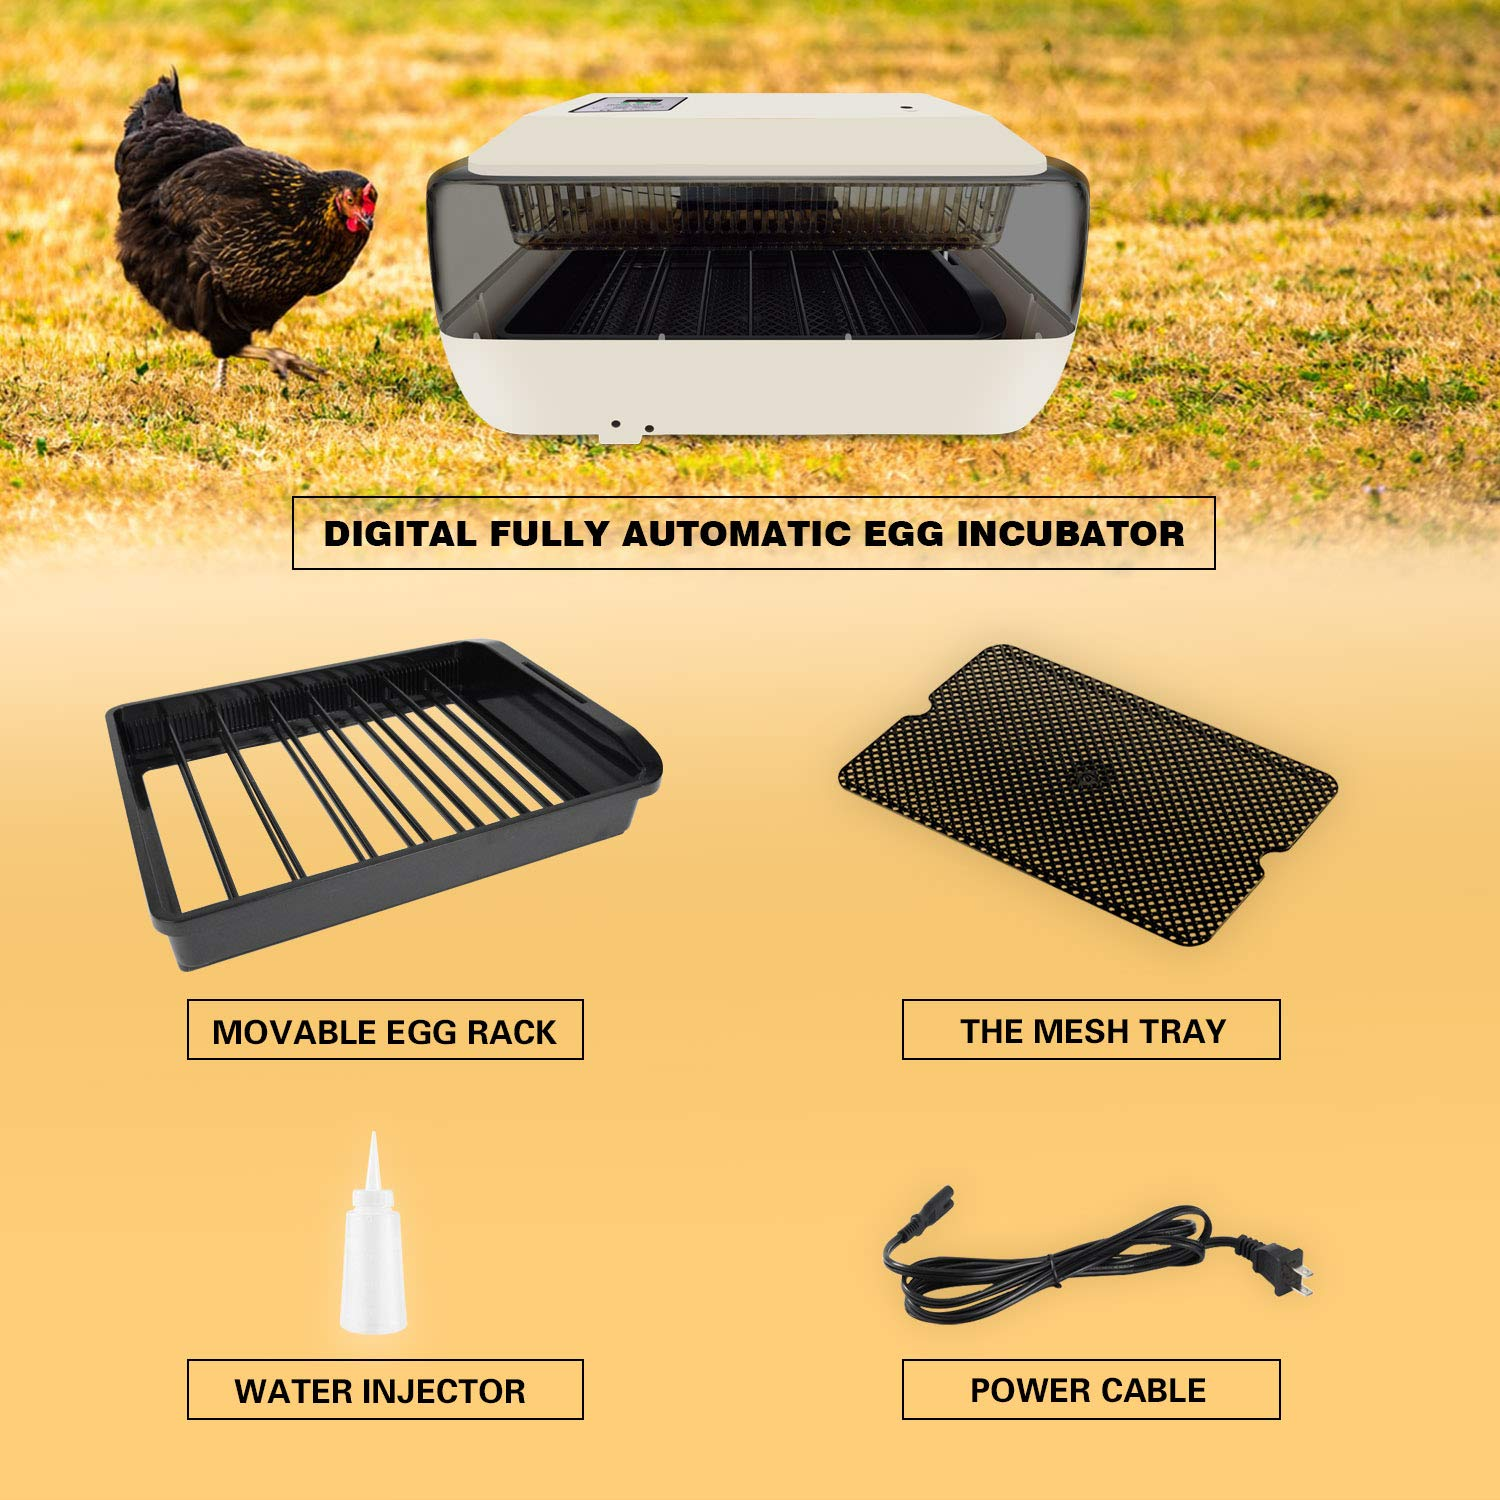 GOOD MOTHER Fully Automatic Egg Incubator 24-30 Eggs Incubators for Hatching Chickens Ducks Geese Birds Eggs Celsius